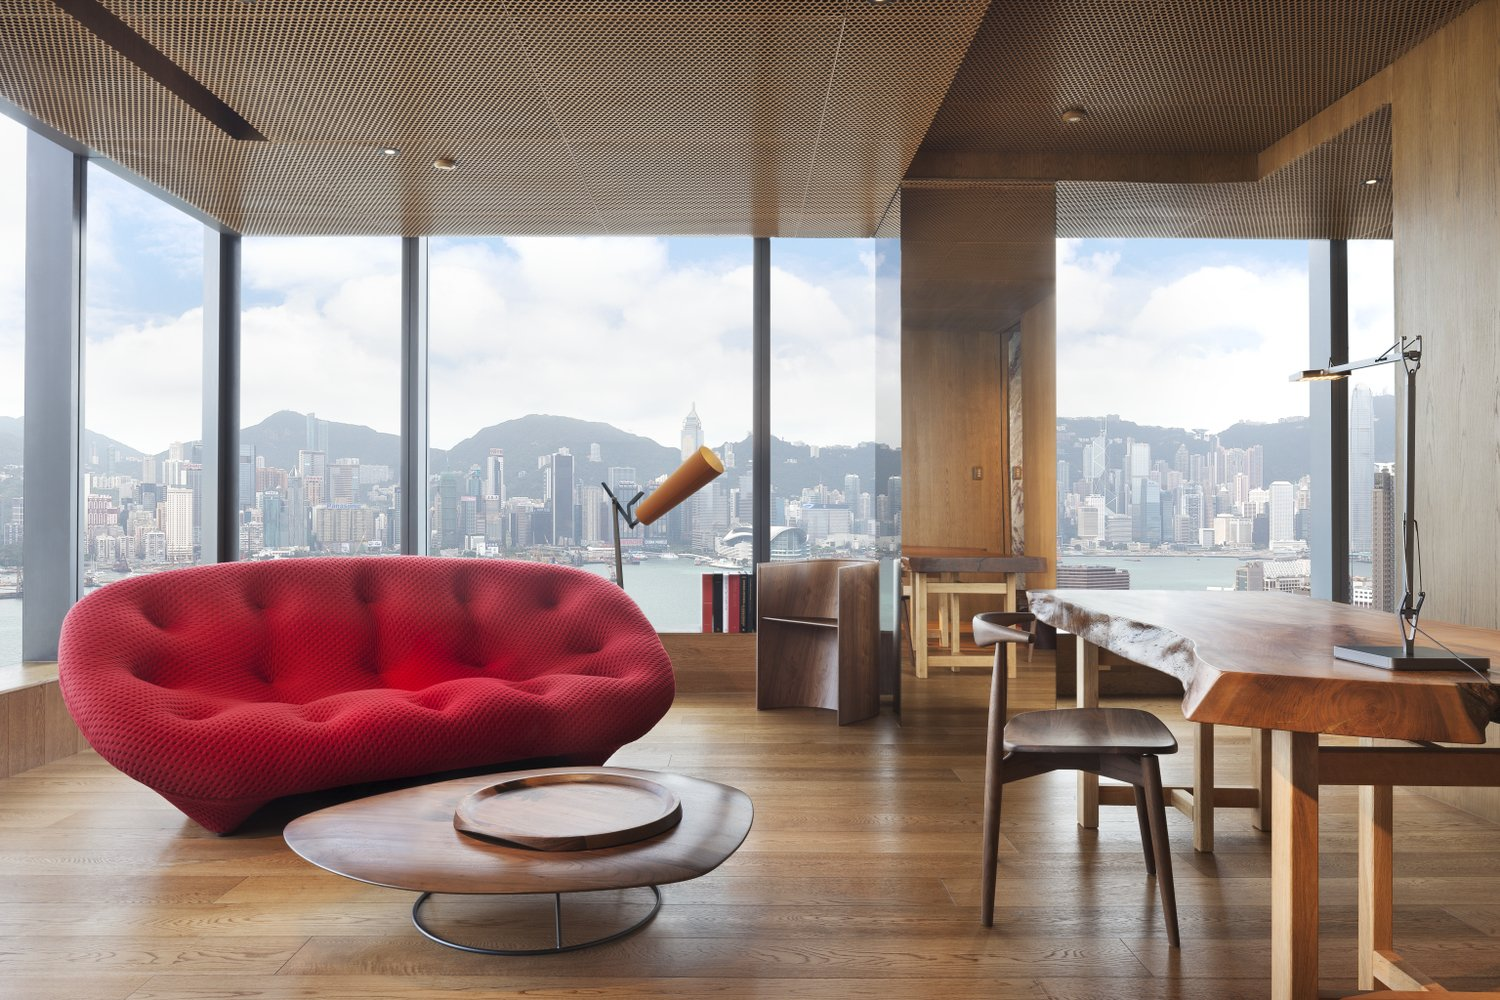 Photo 1 of 11 in 10 Modern and Stylish Places to Stay in Hong Kong